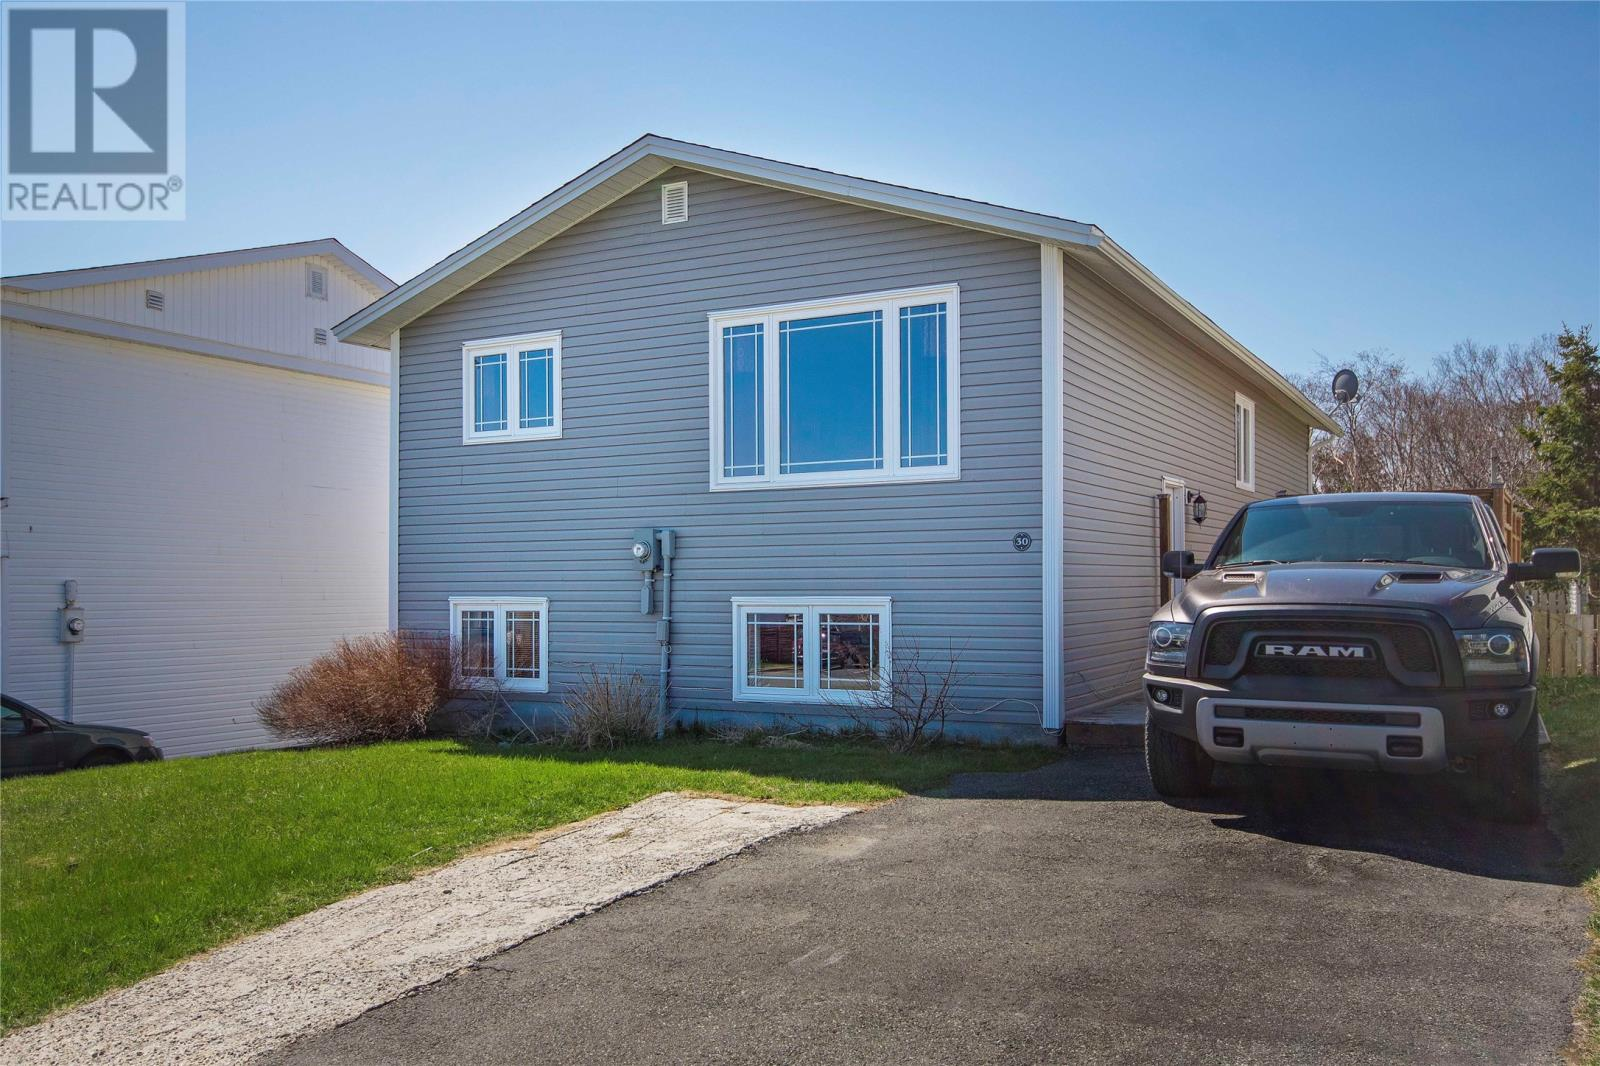 Removed: 30 Jackman Drive, Mount Pearl, NL - Removed on 2019-07-14 11:15:08